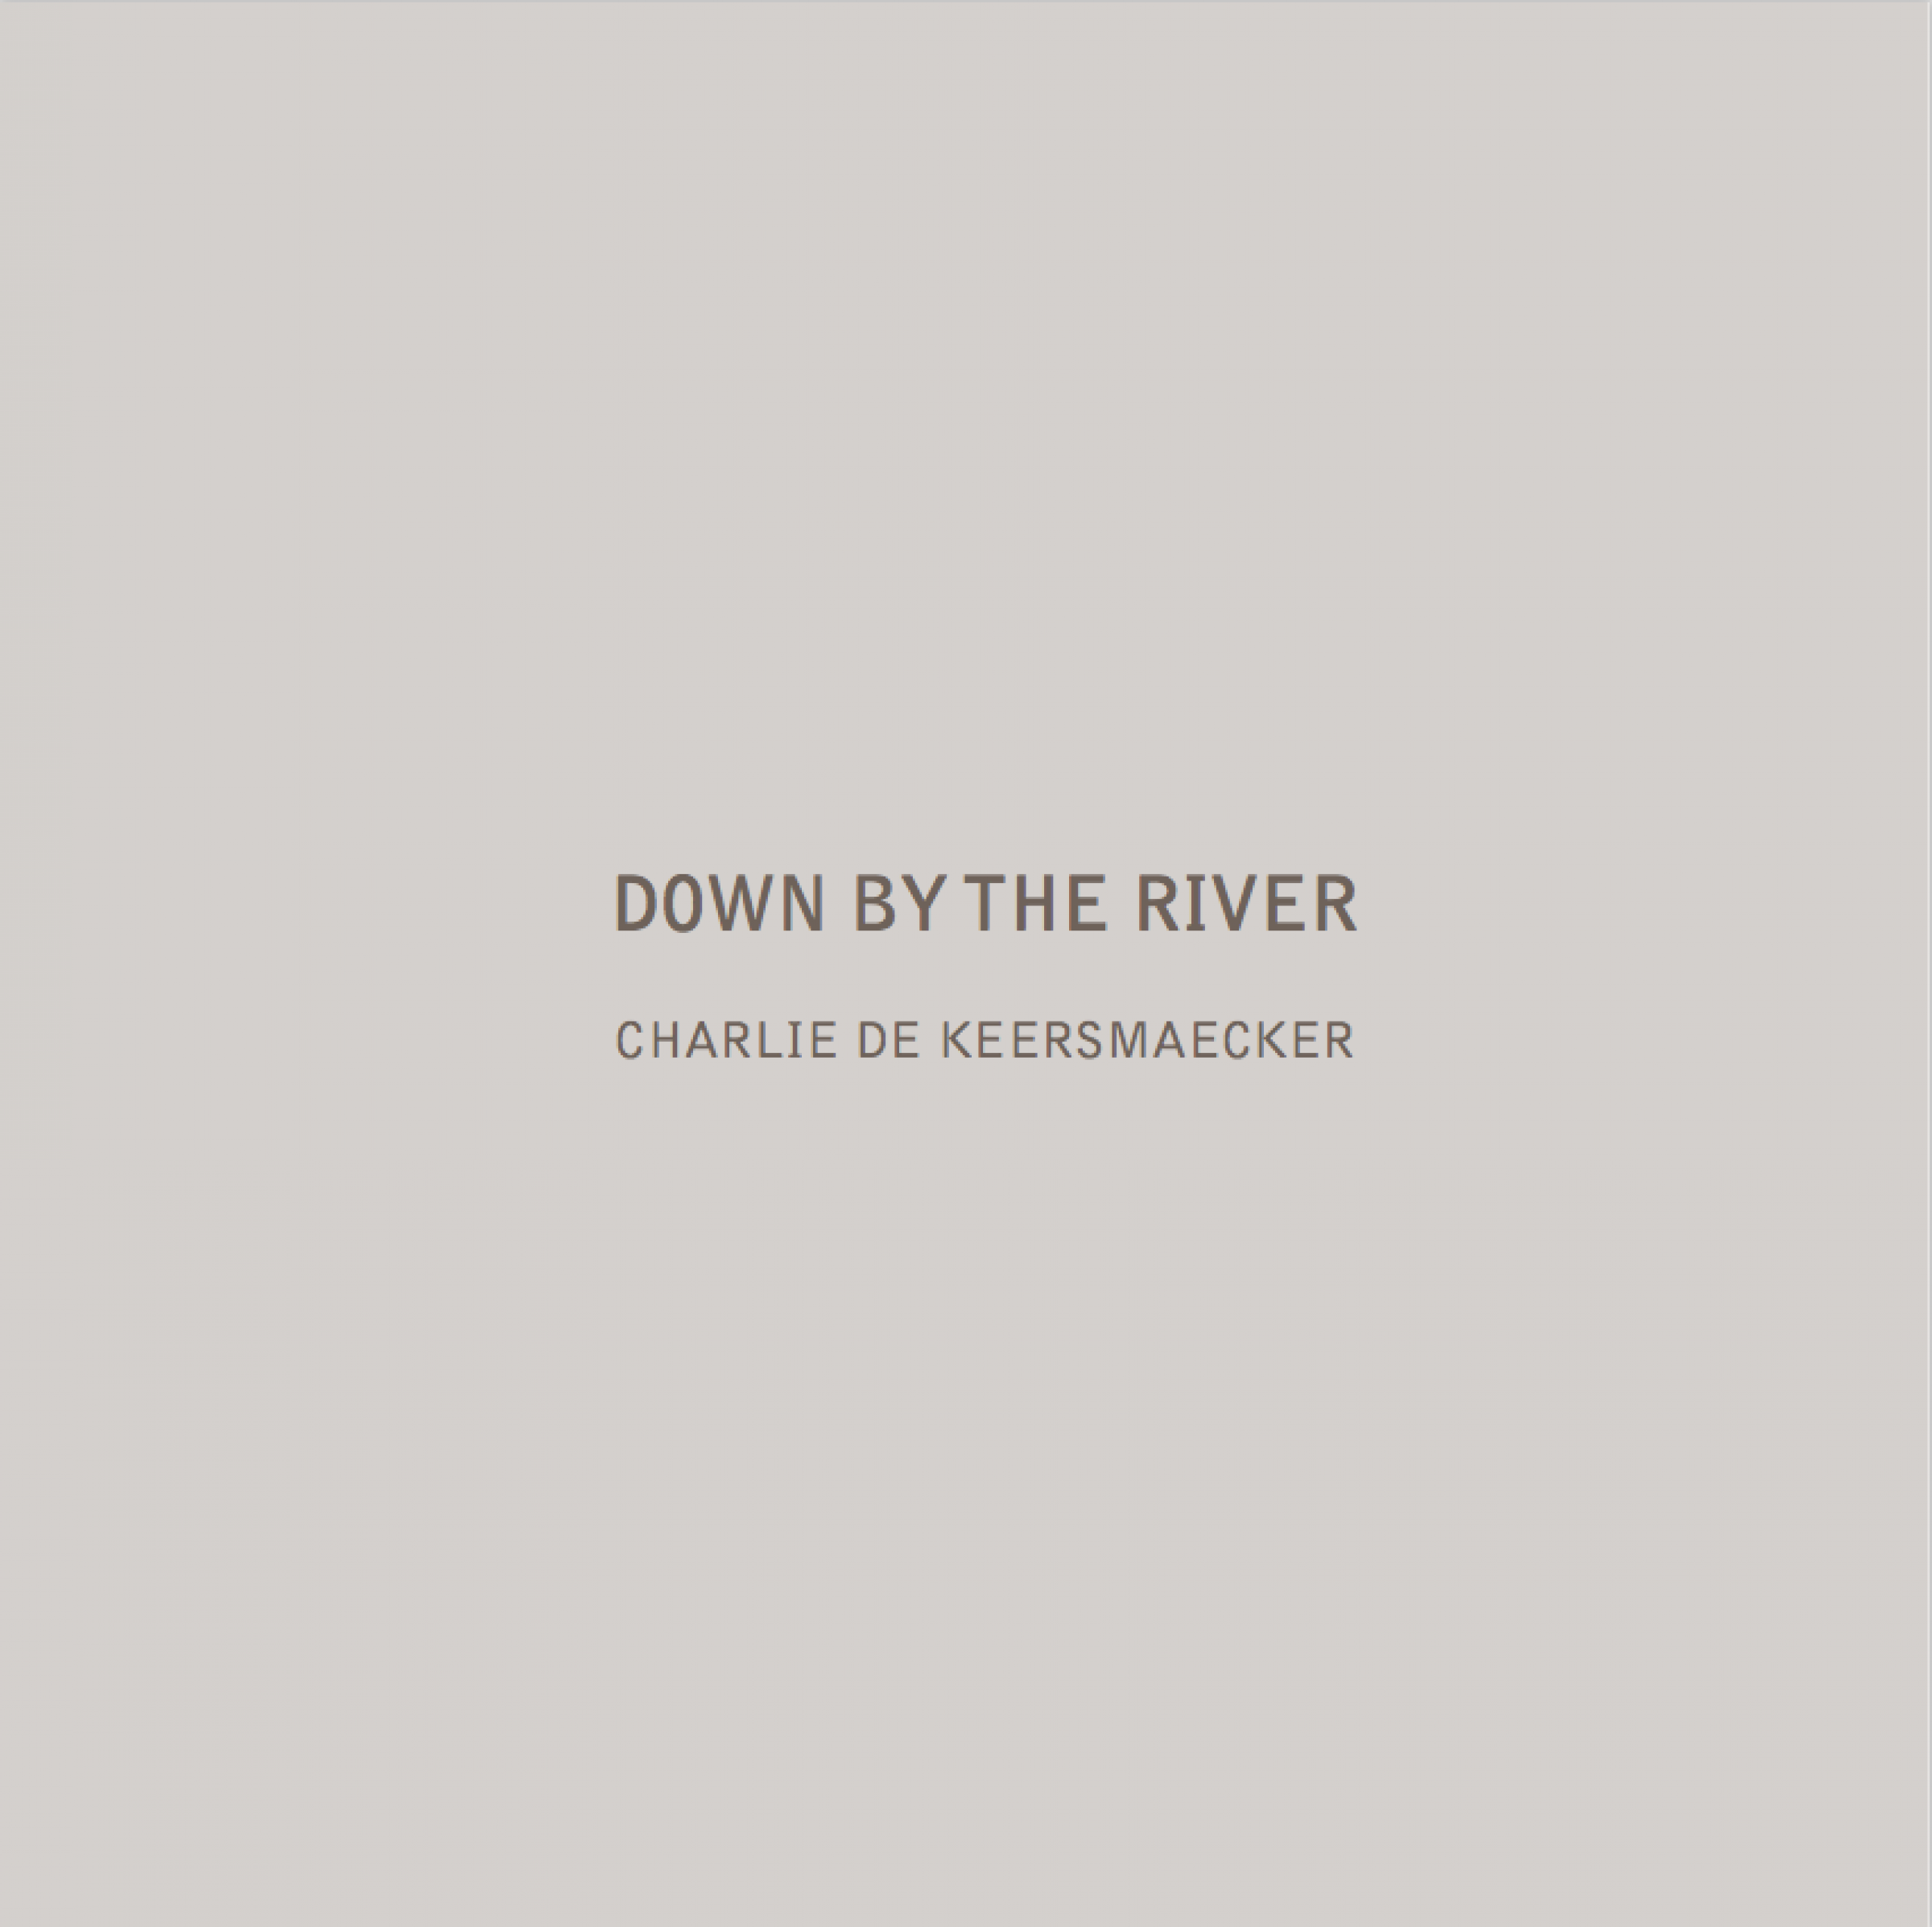 Charlie De Keersmaecker: Down by the River